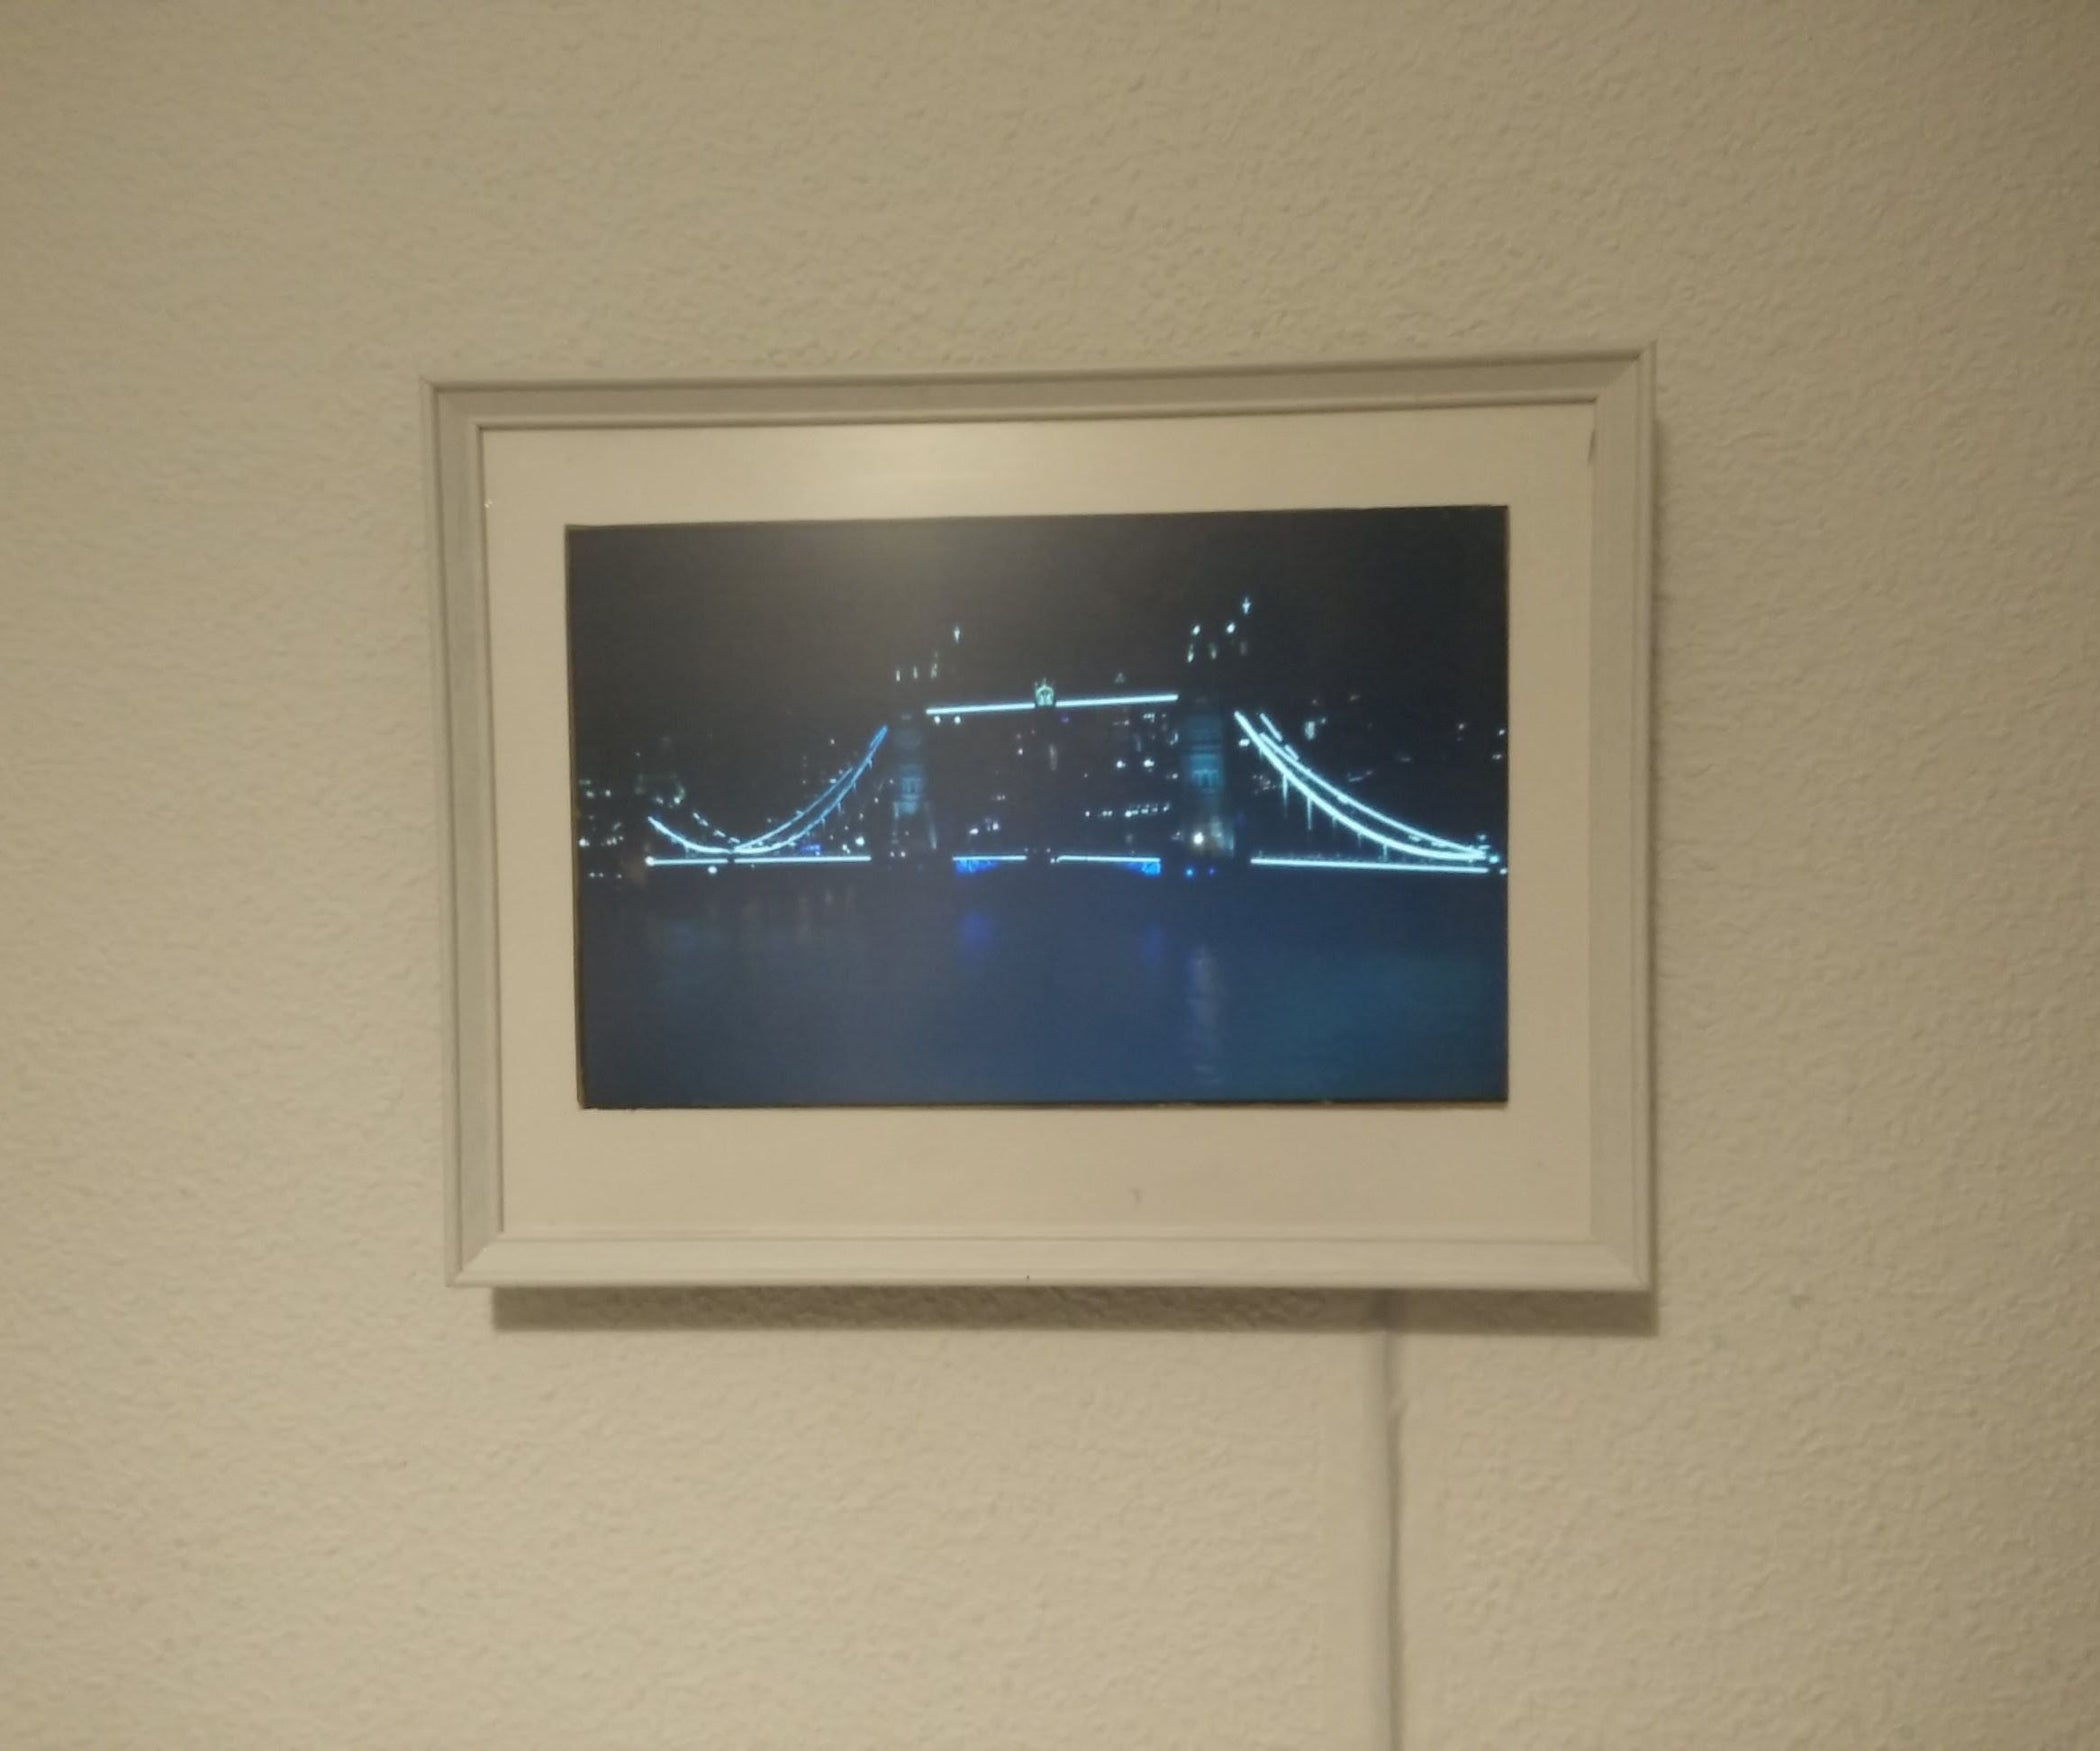 Live Picture Frame With Raspberry PI: 7 Steps (with Pictures)